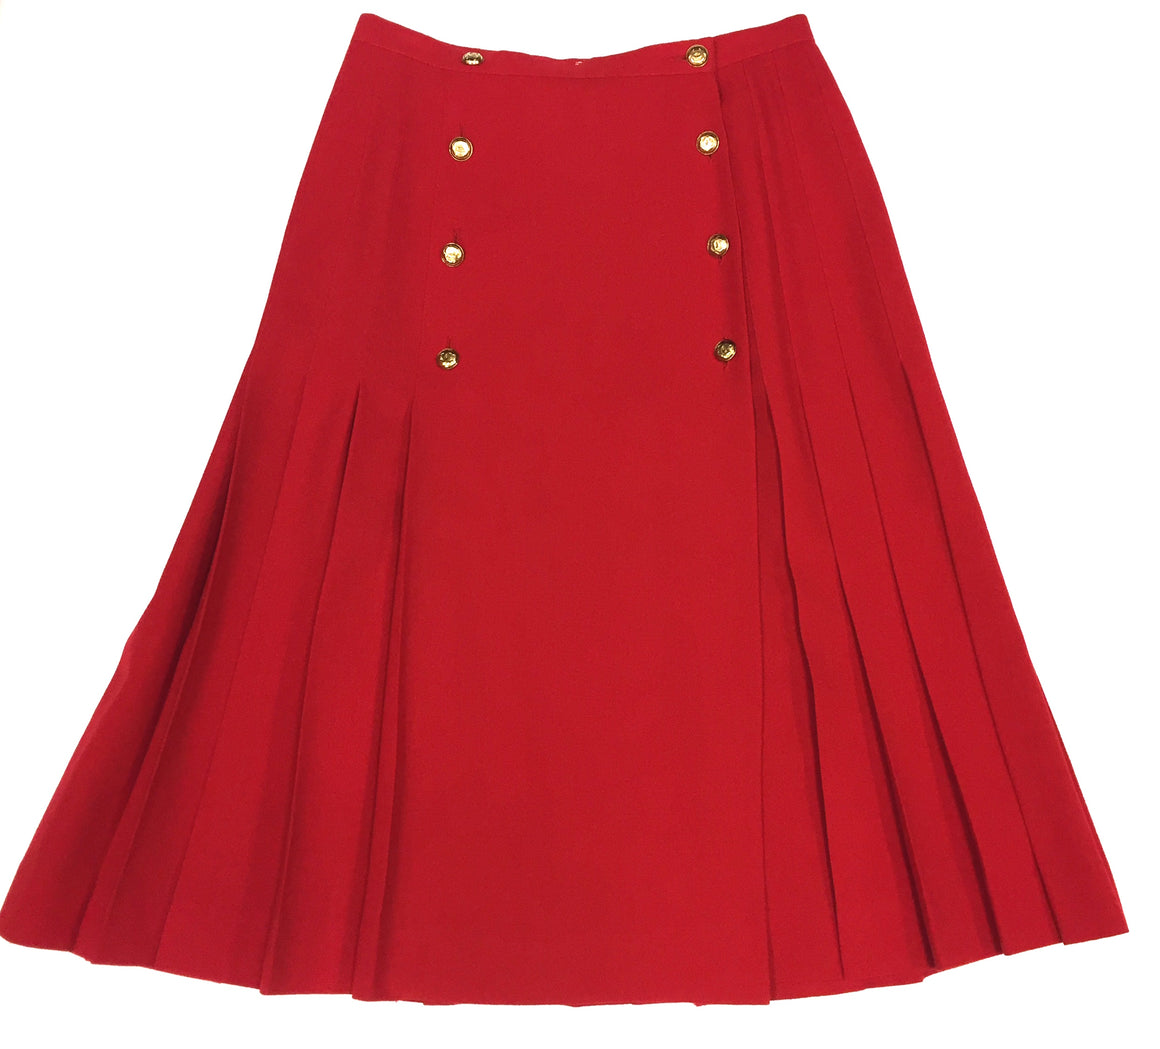 CHANEL Vintage Red Wool Button-Front Midi Length Pleated Wrap Skirt  Size: 10 - Estimated